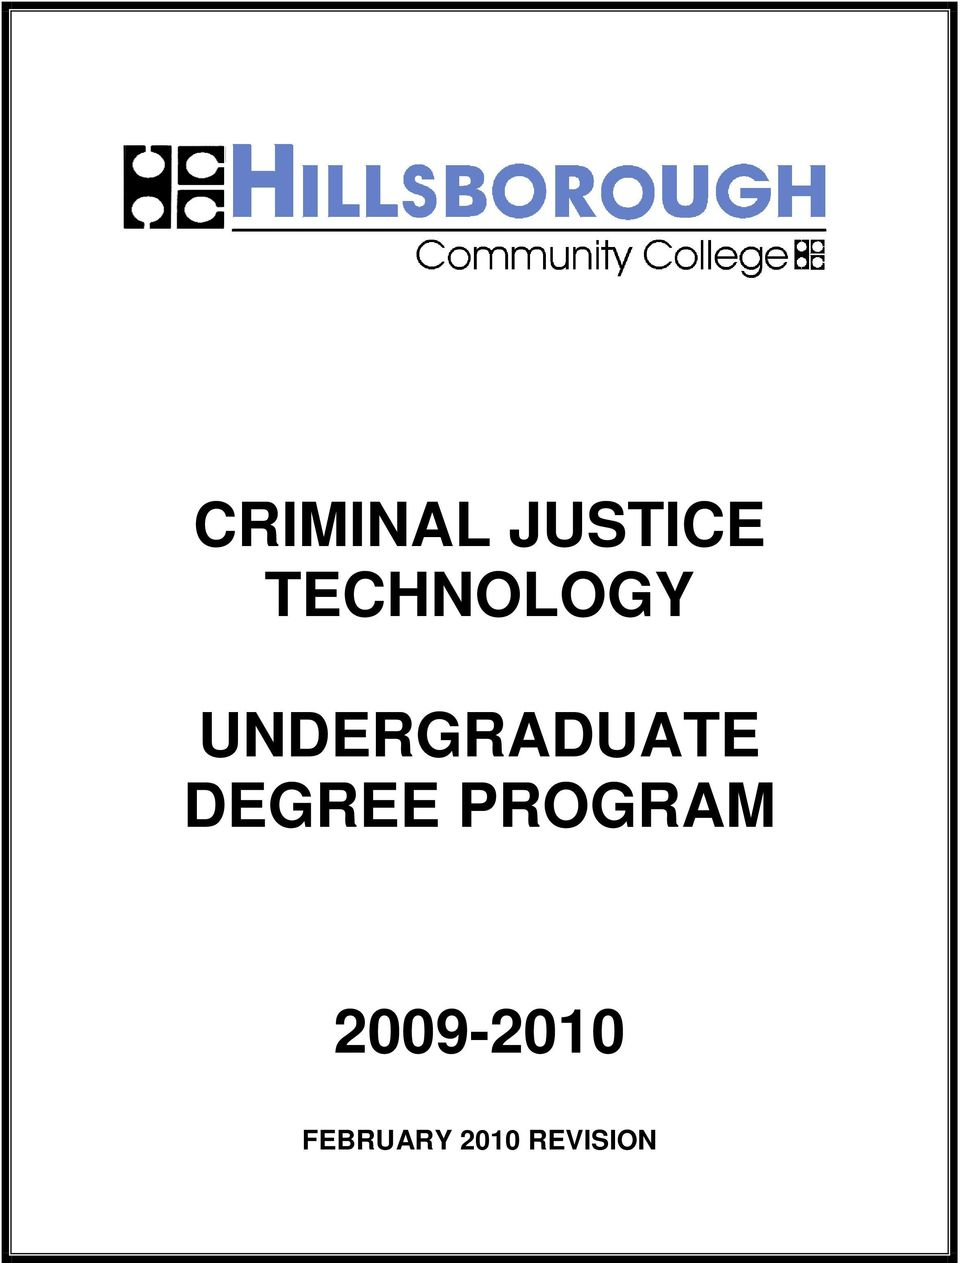 UNDERGRADUATE DEGREE